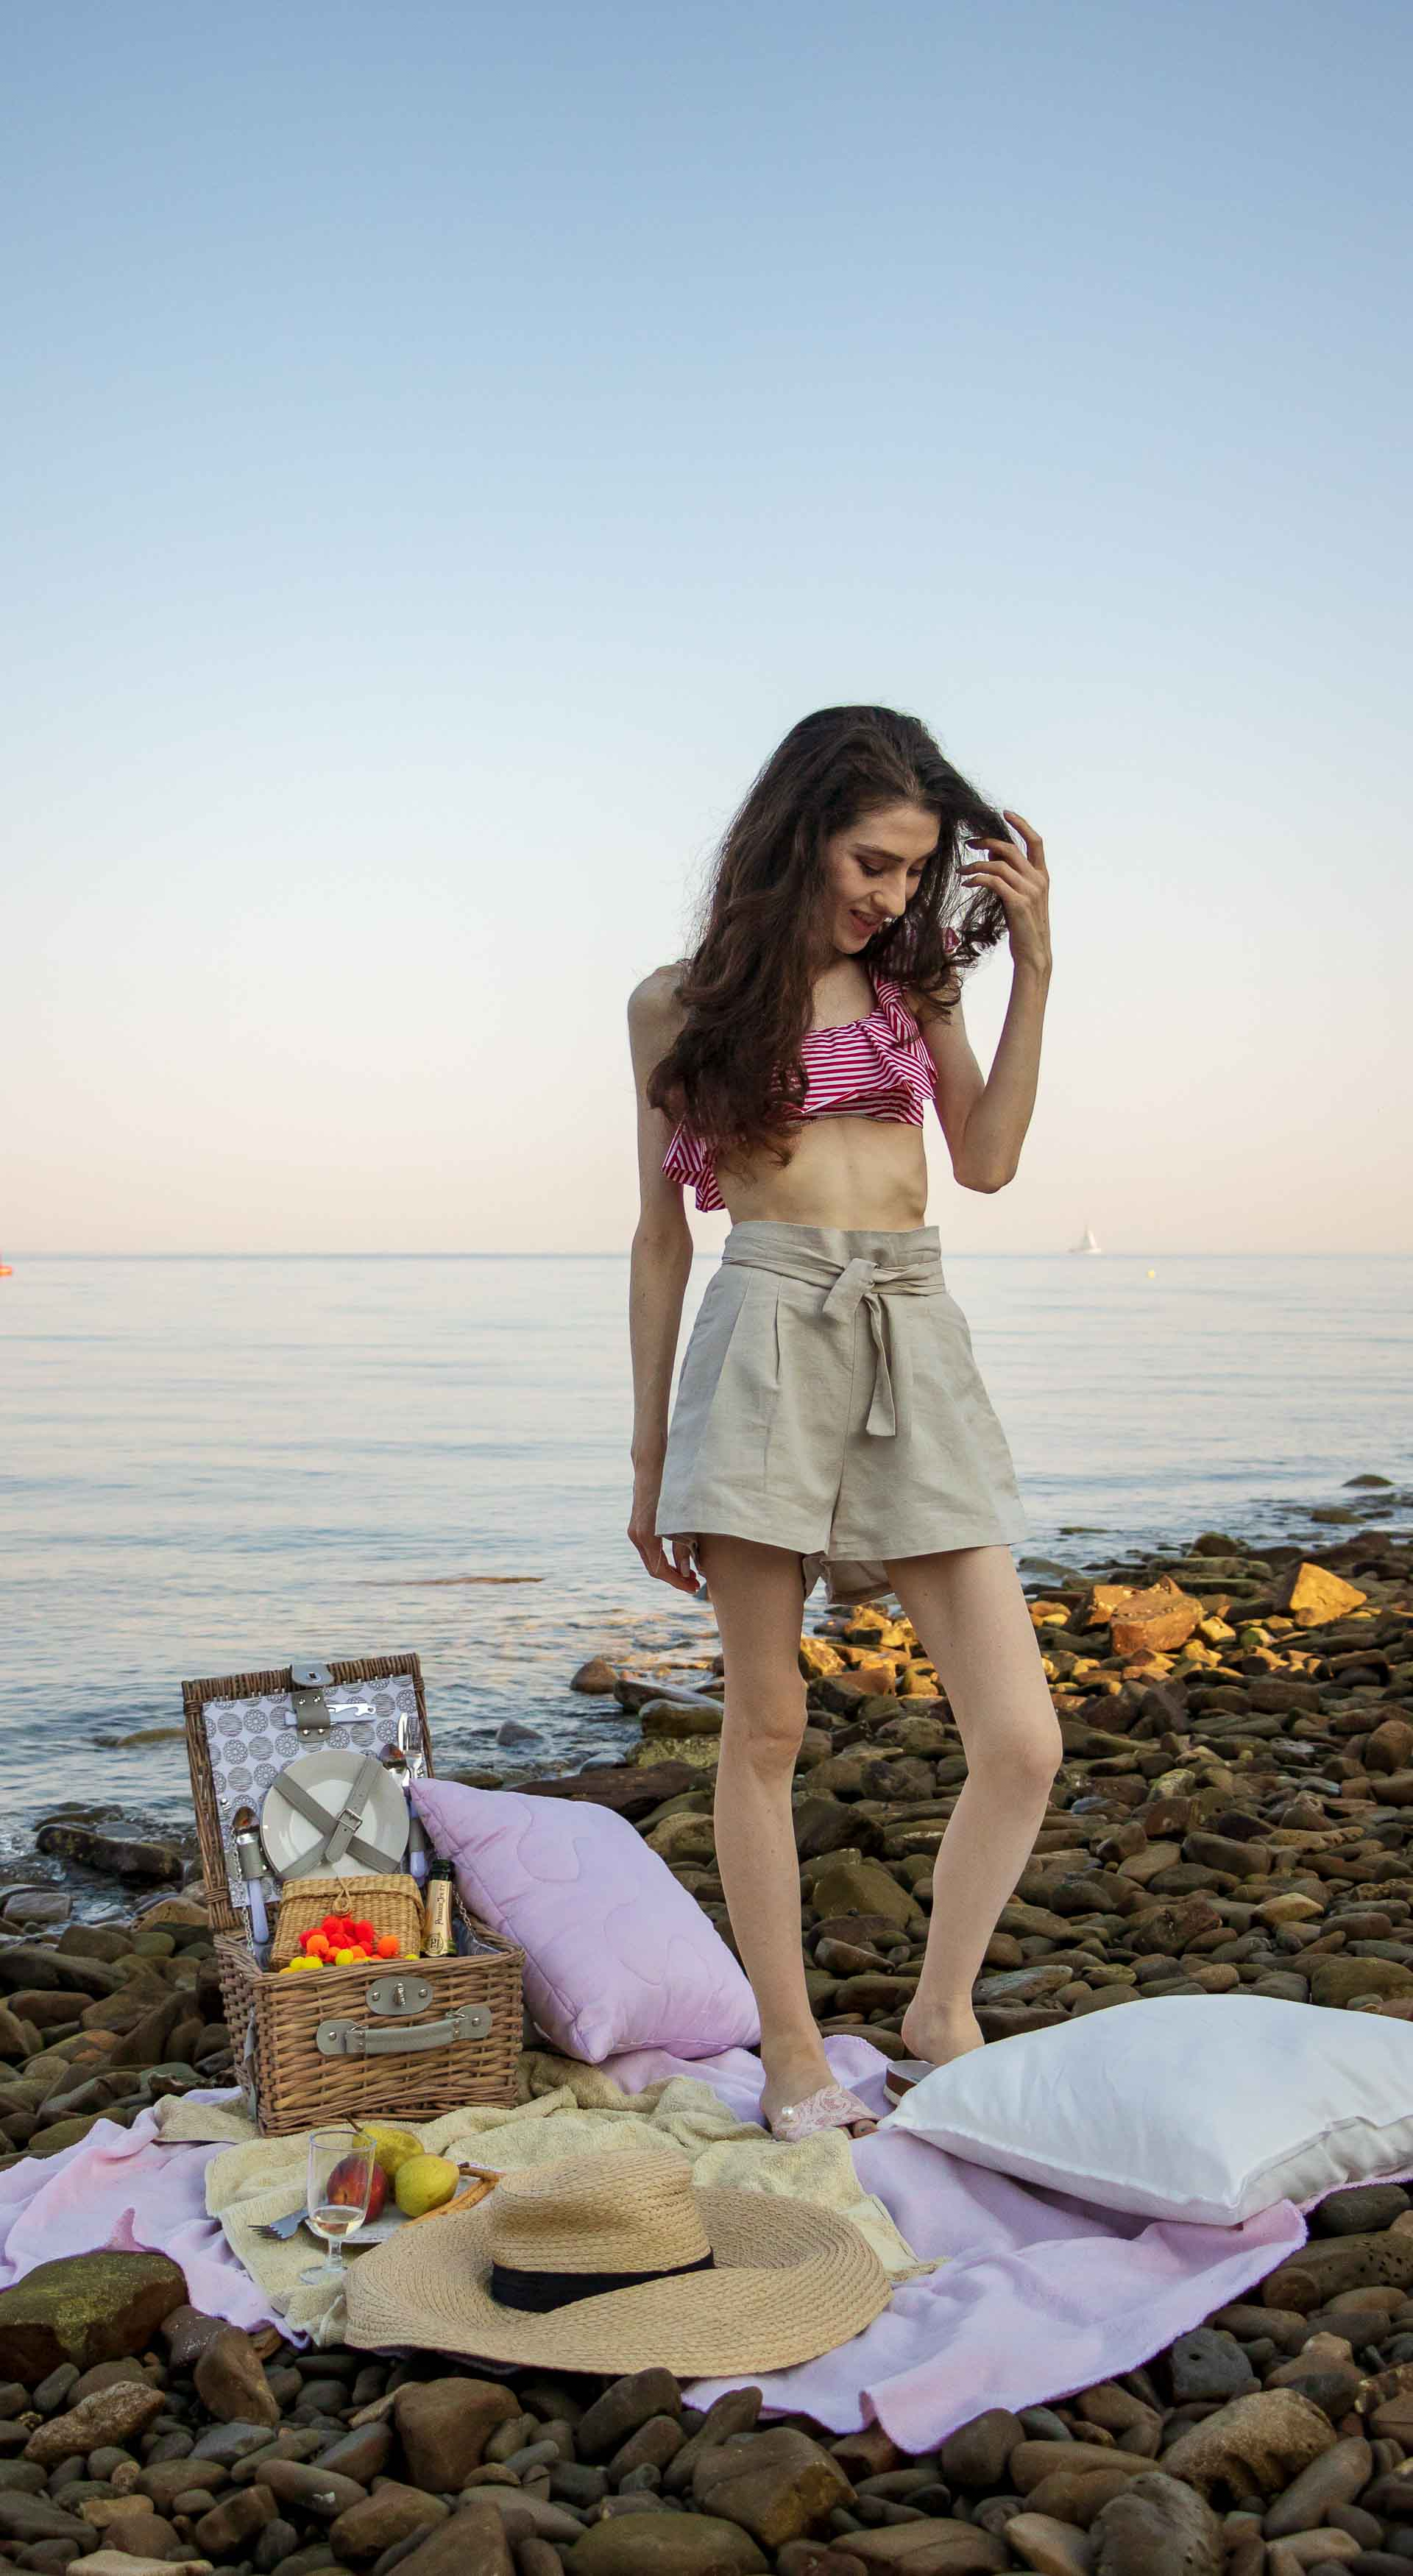 Slovenian Fashion Blogger Veronika Lipar of Brunette from Wall wearing beige linen crop top, paper bag linen shorts, luxe pool slides, large straw hat, Nannacay basket bag while standing on the picnic blanket on the beach